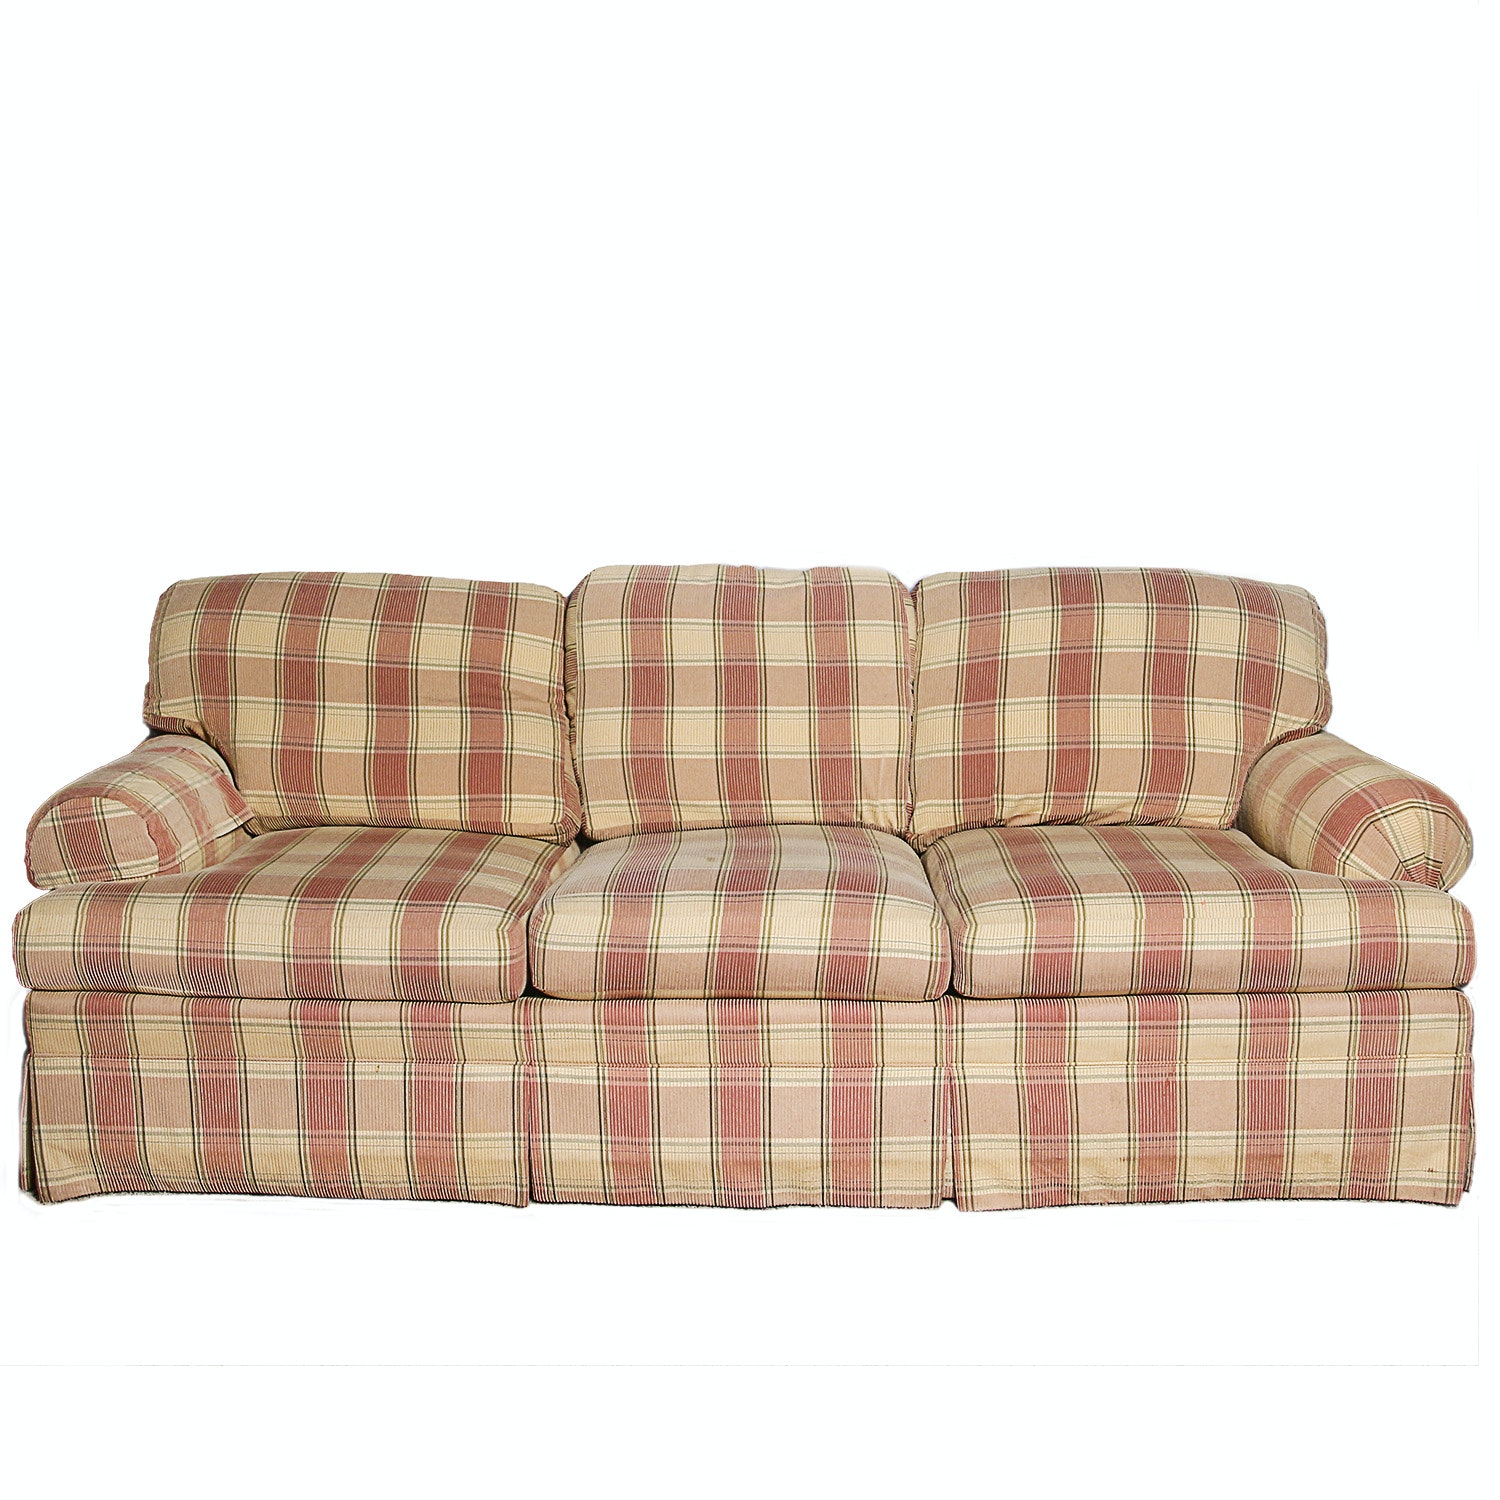 Plaid Sofa Furnitures Plaid Sofa Elegant Uhuru Furniture